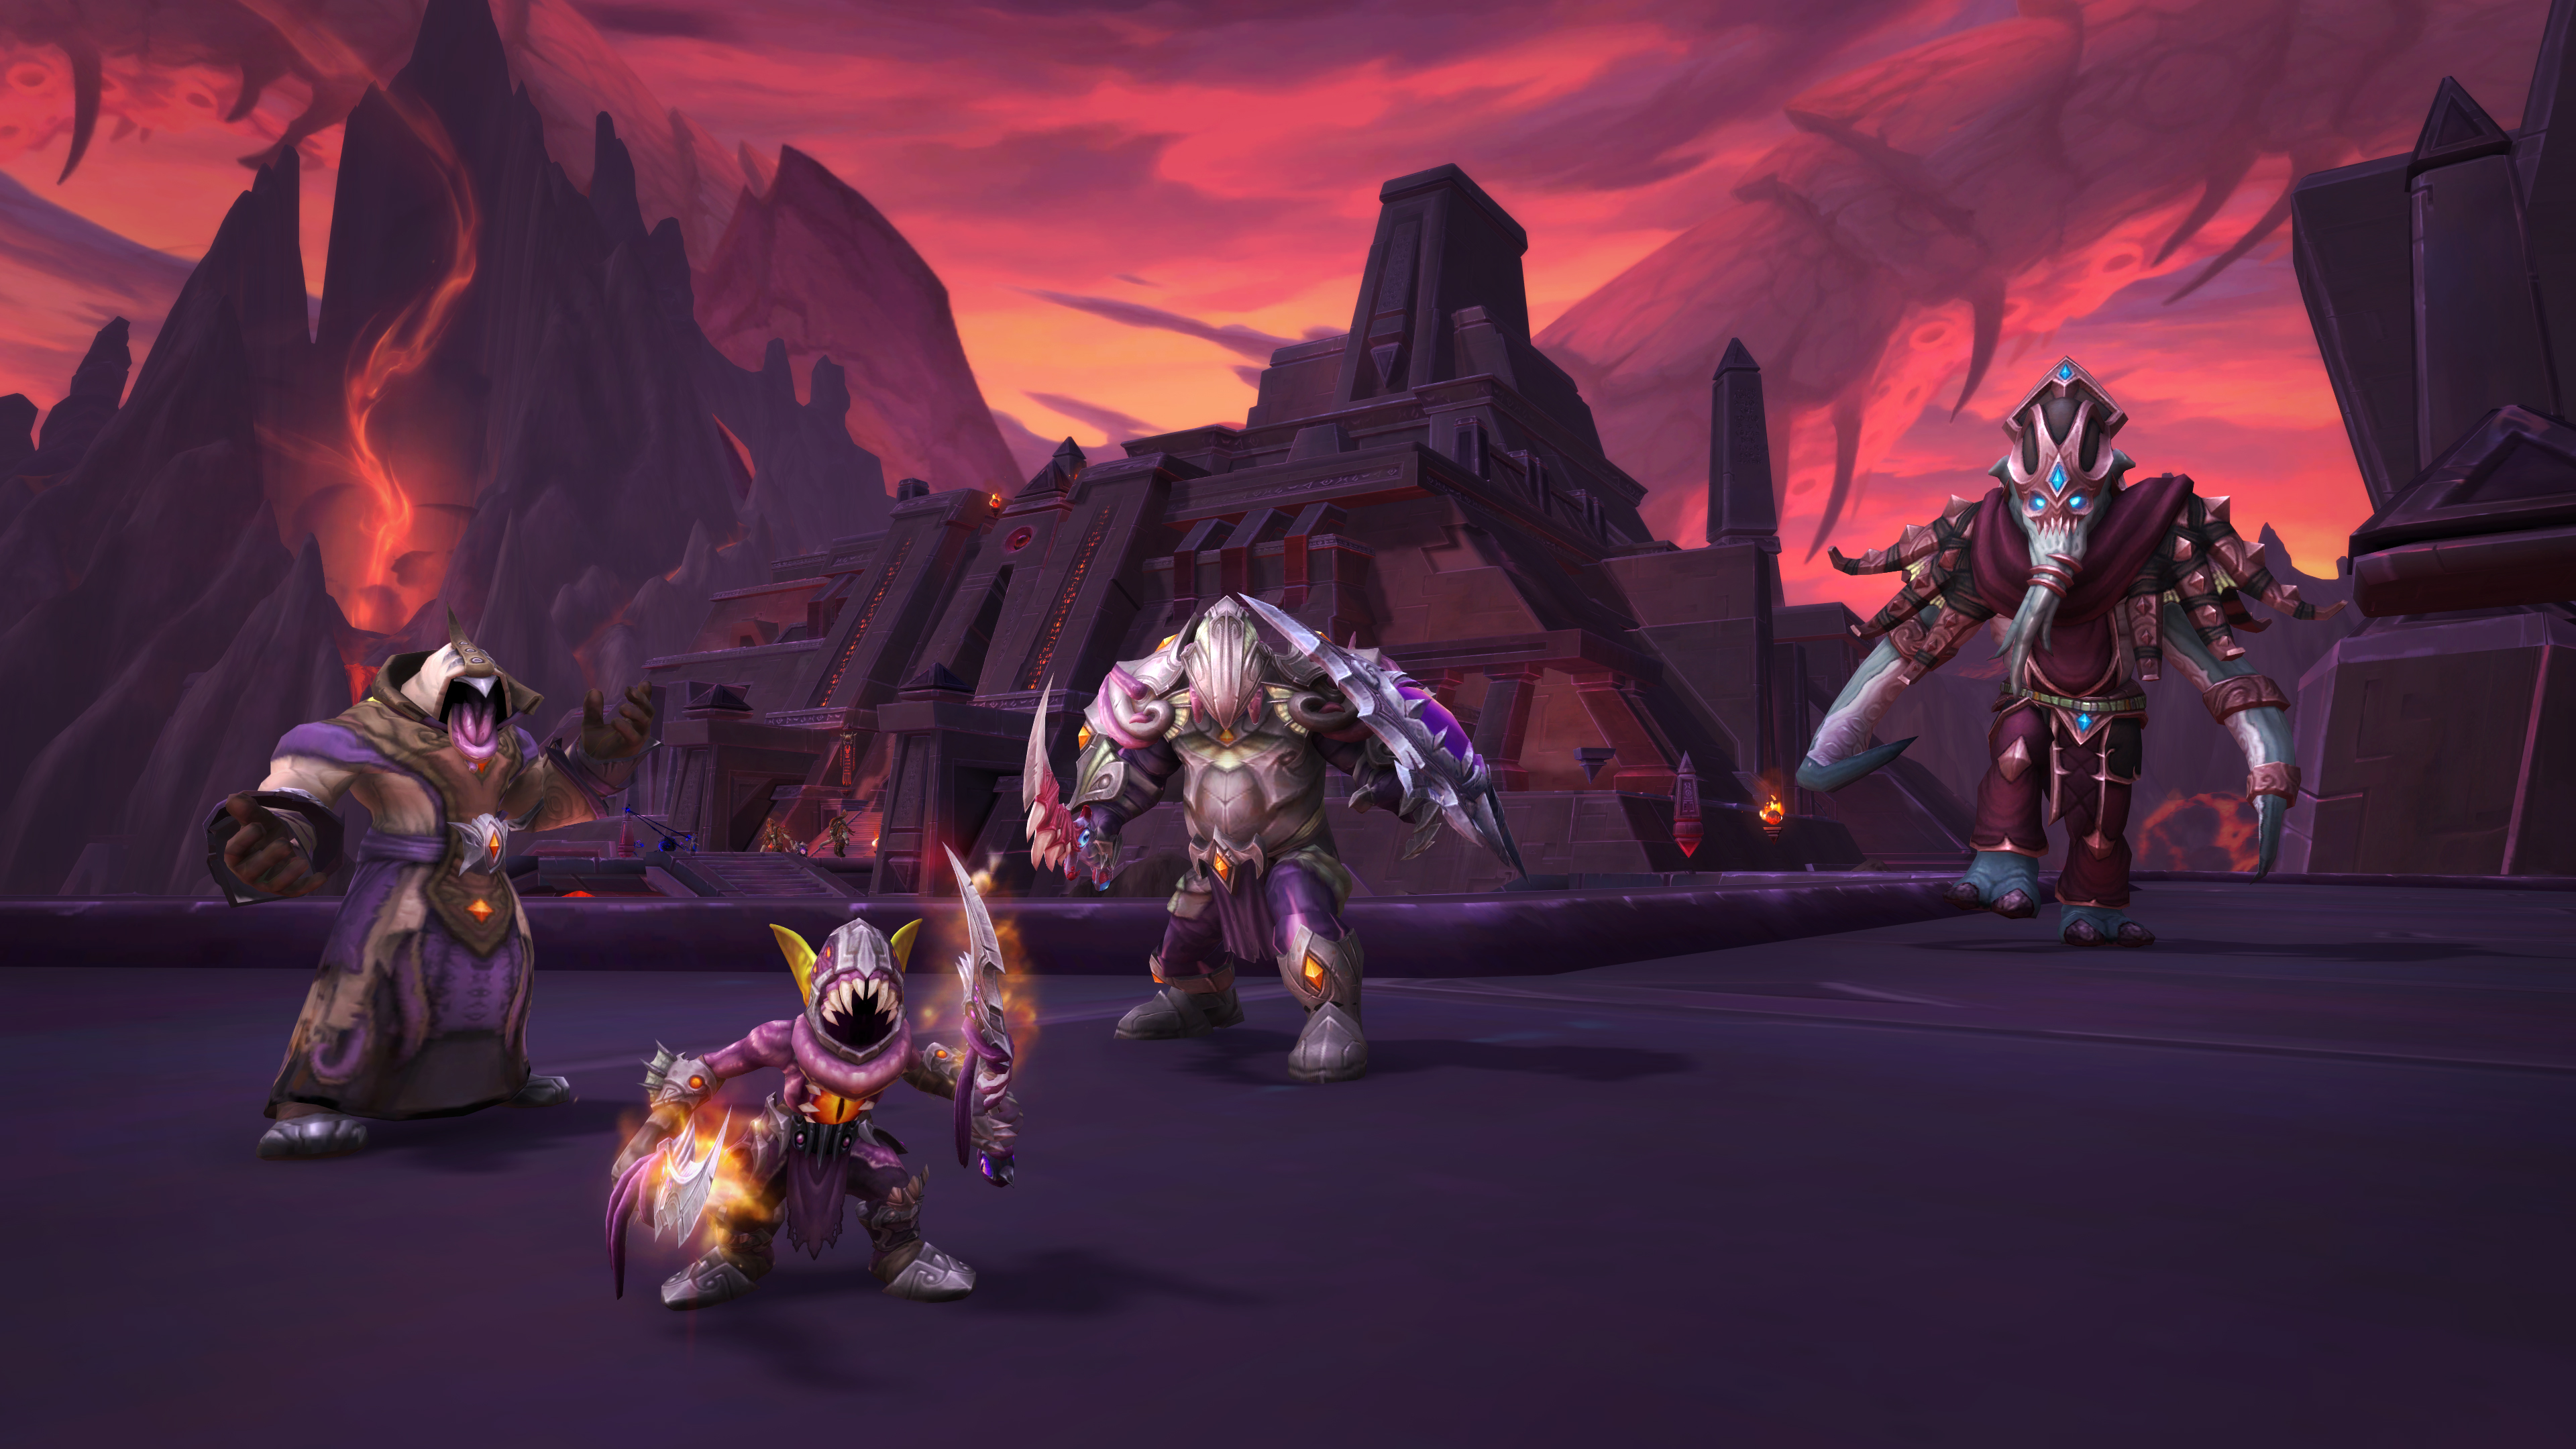 WoW 8.3 raid guide: how to beat Ny'alotha, The Waking City | PC Gamer